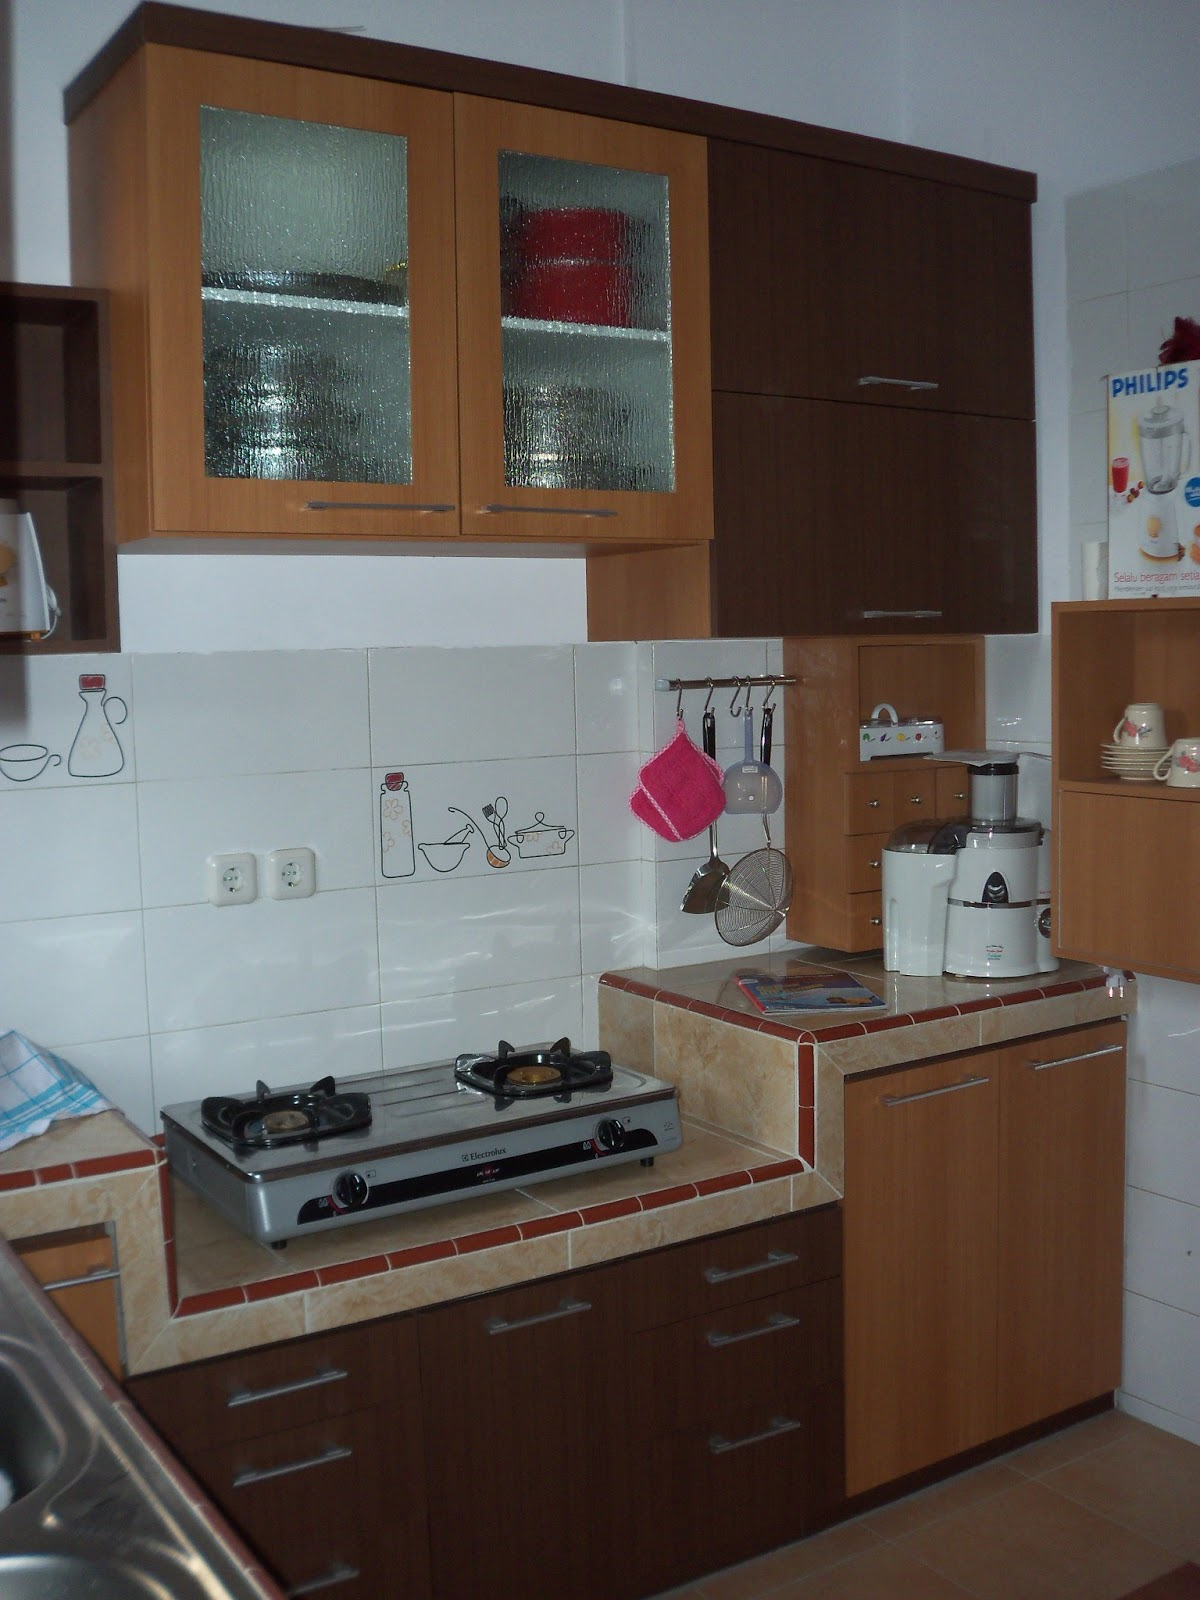 Jual kitchen set jual kitchen set 085319185446 for Kitchen set tangerang